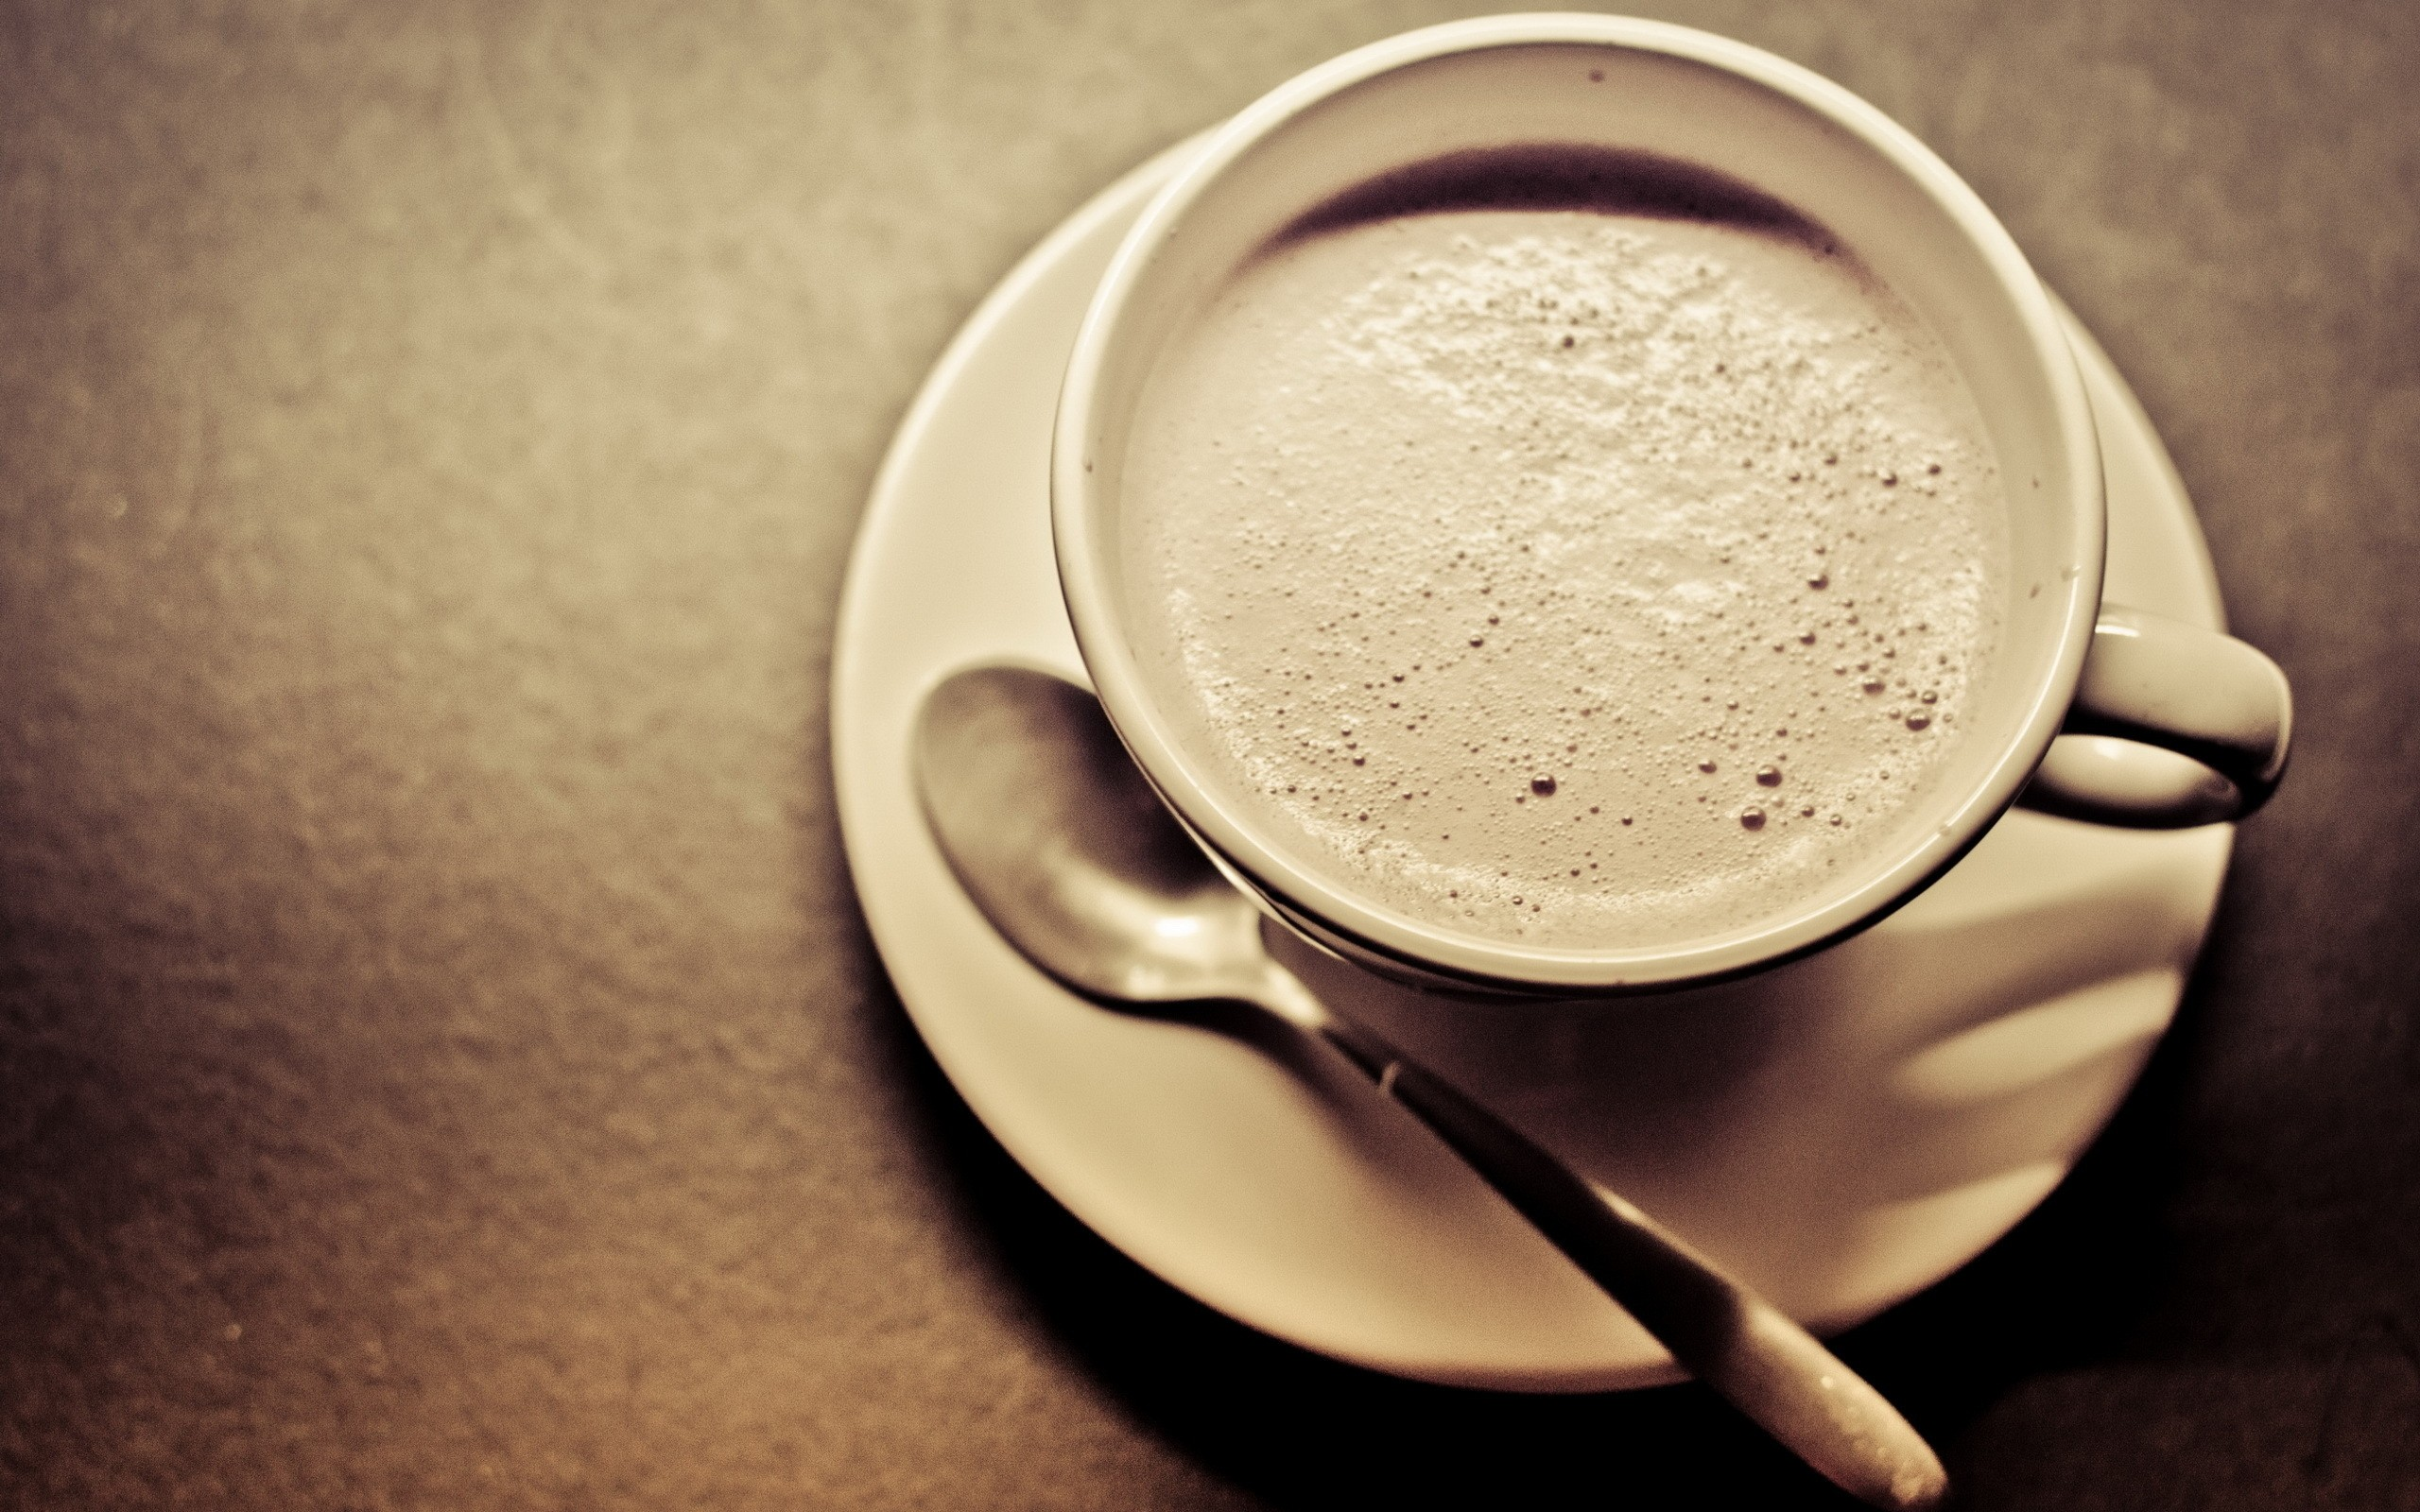 Coffee Cup Wallpaper Backgrounds - WallpaperSafari